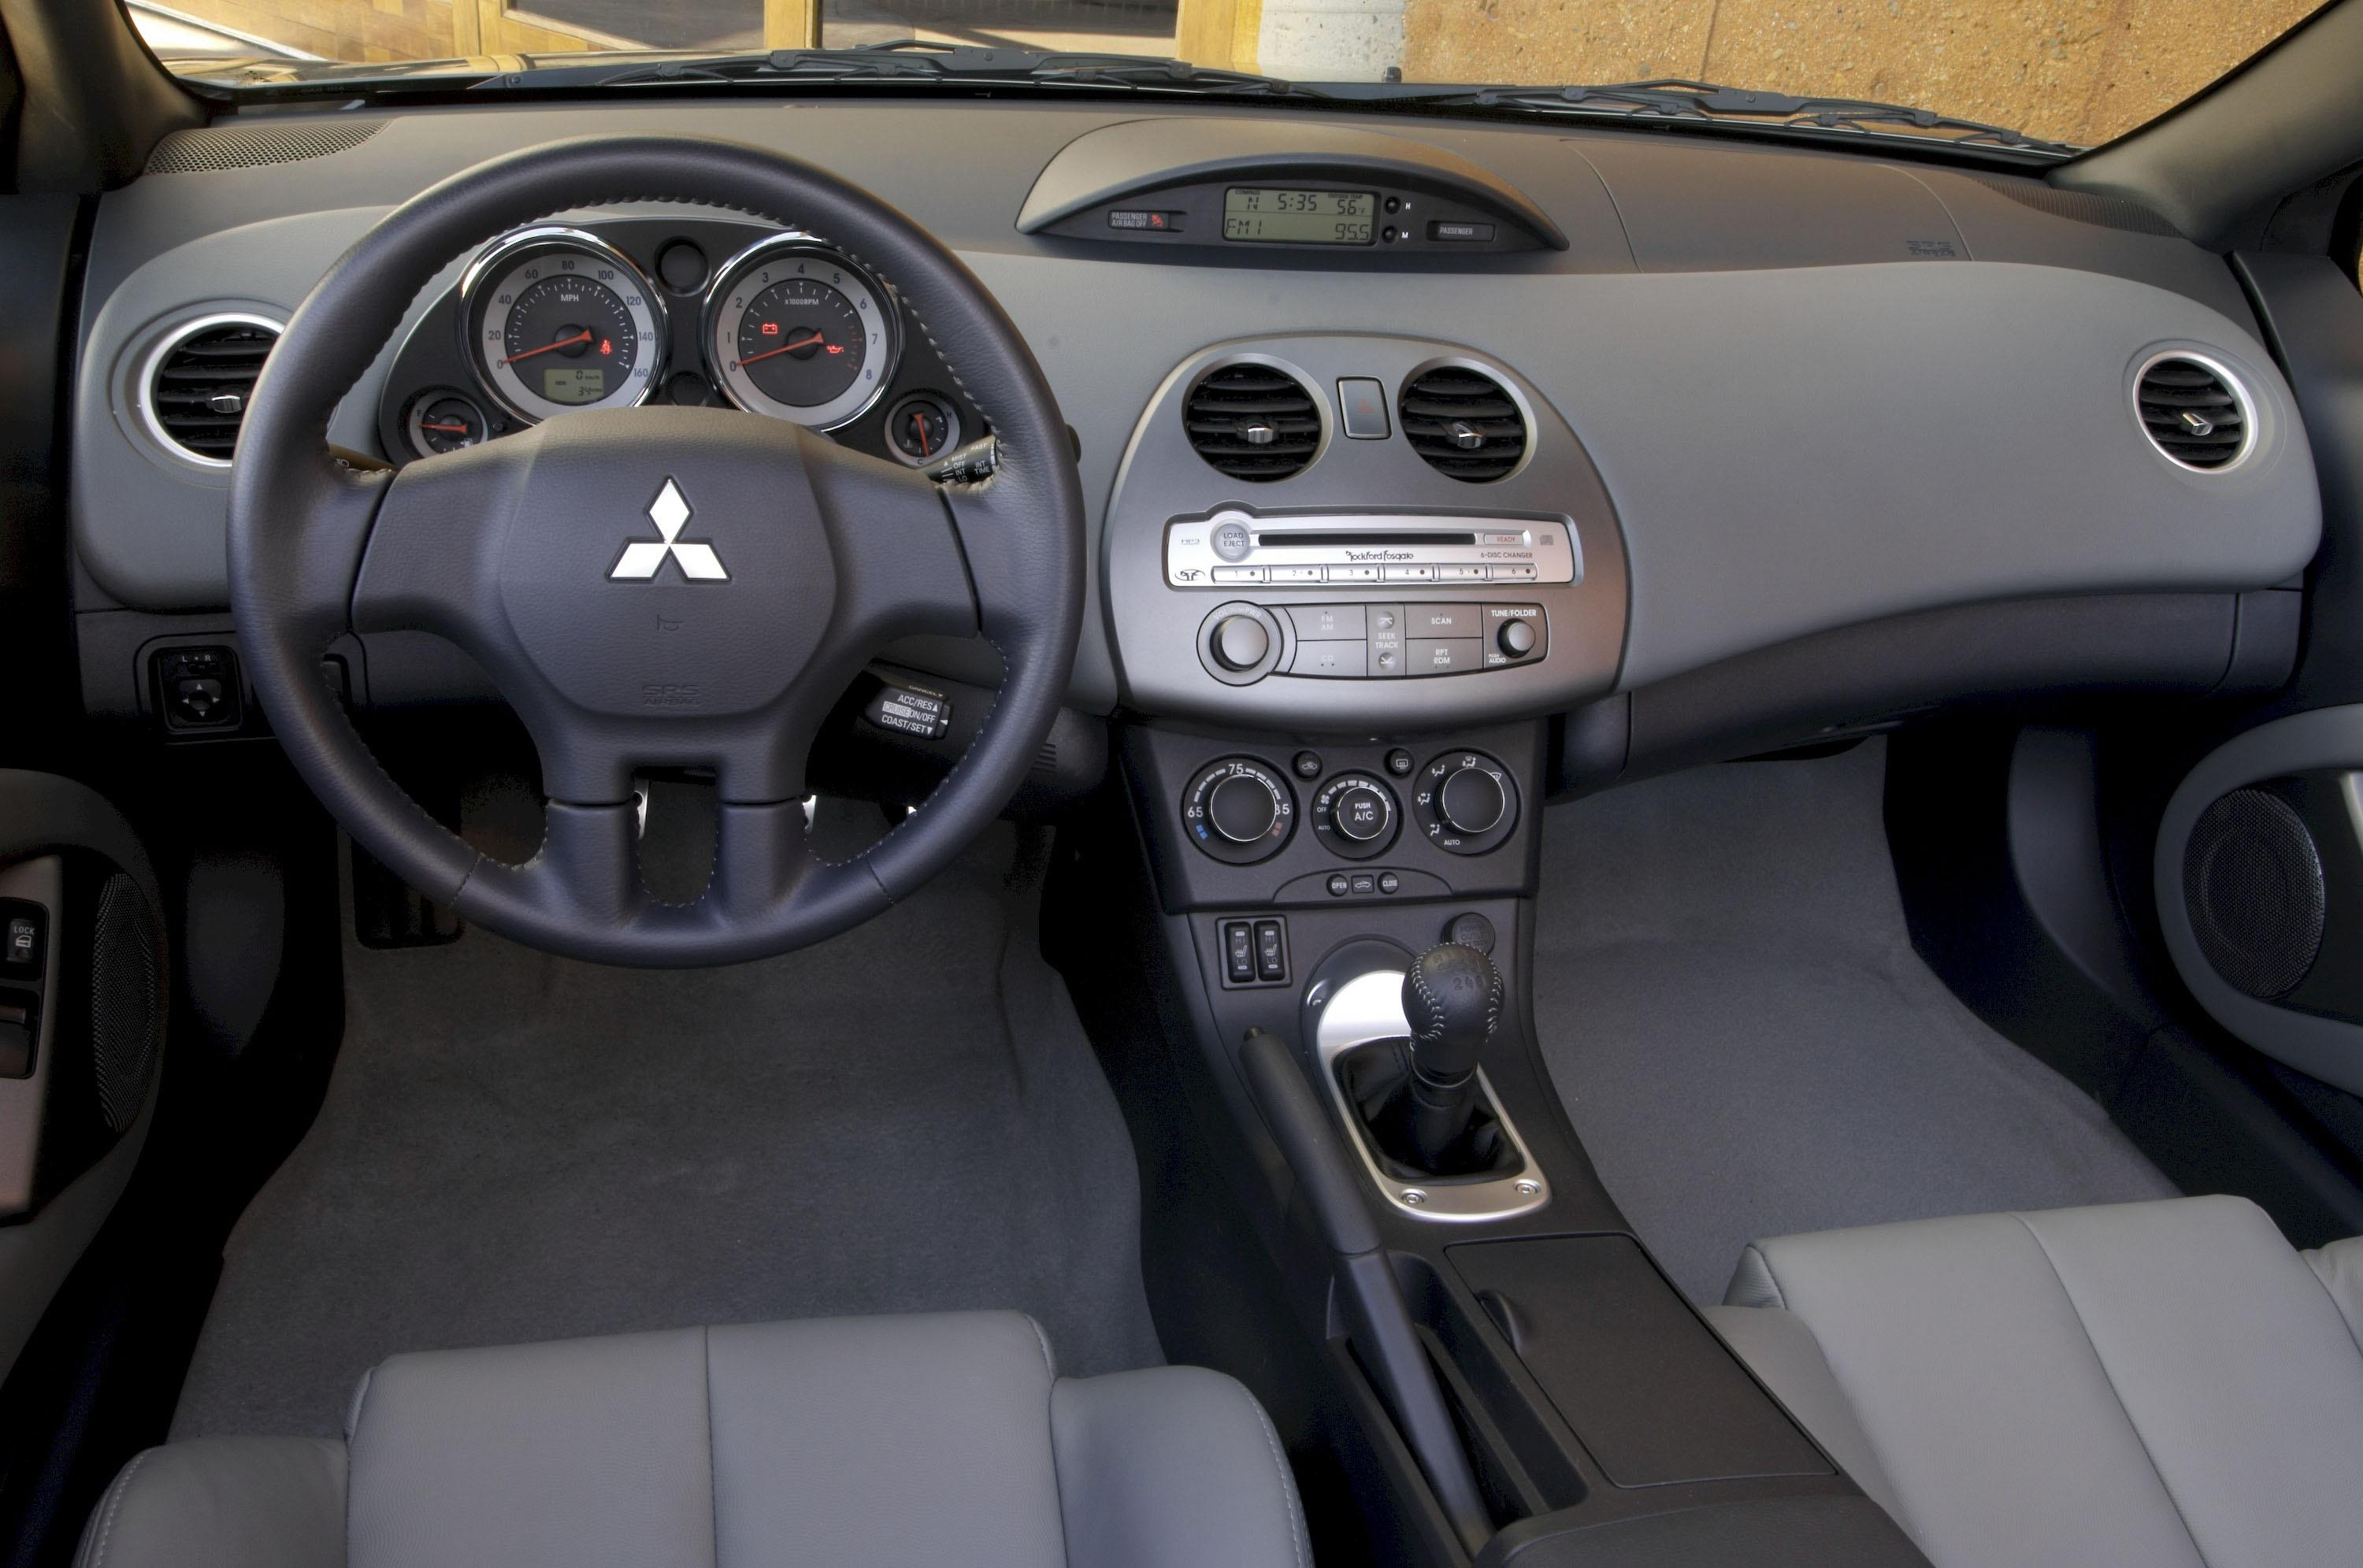 Amazing 2007 Mitsubishi Eclipse Spyder | Top Speed. »